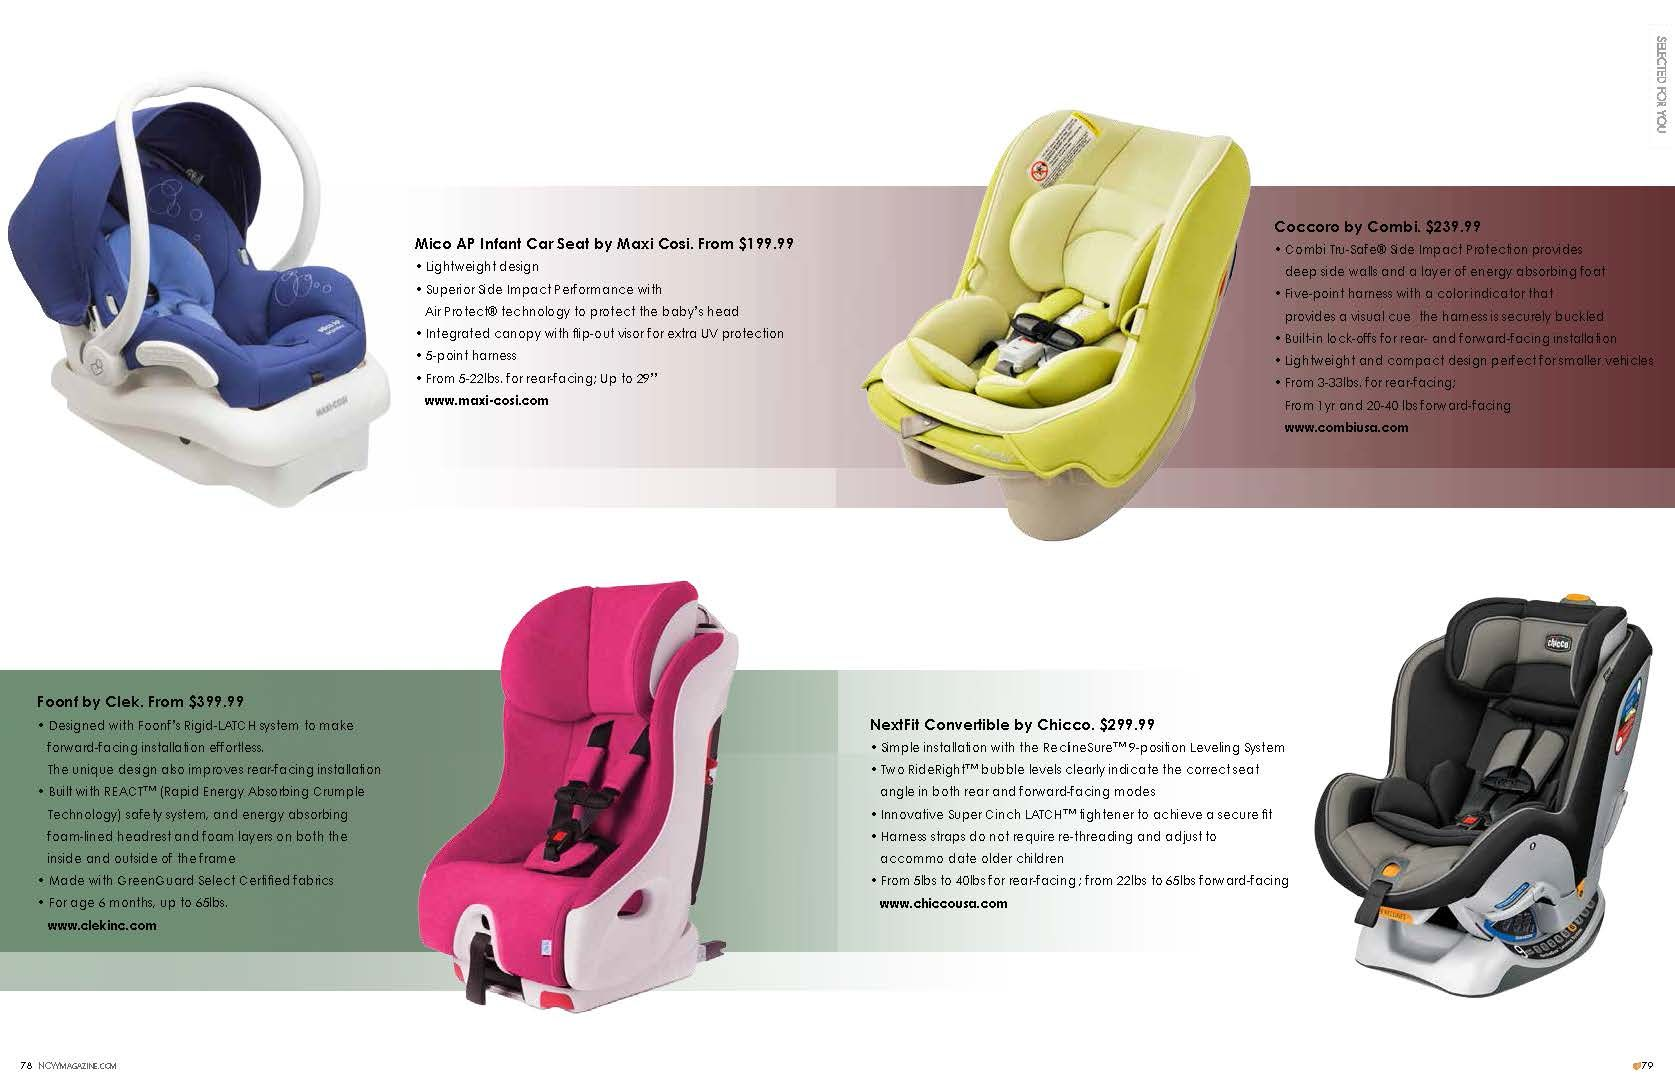 We Re Proud To Share That The Coccoro Was Featured In Natural Child World S Special Design Edition This Month Http Comb Car Seats Baby Car Seats Nature Kids